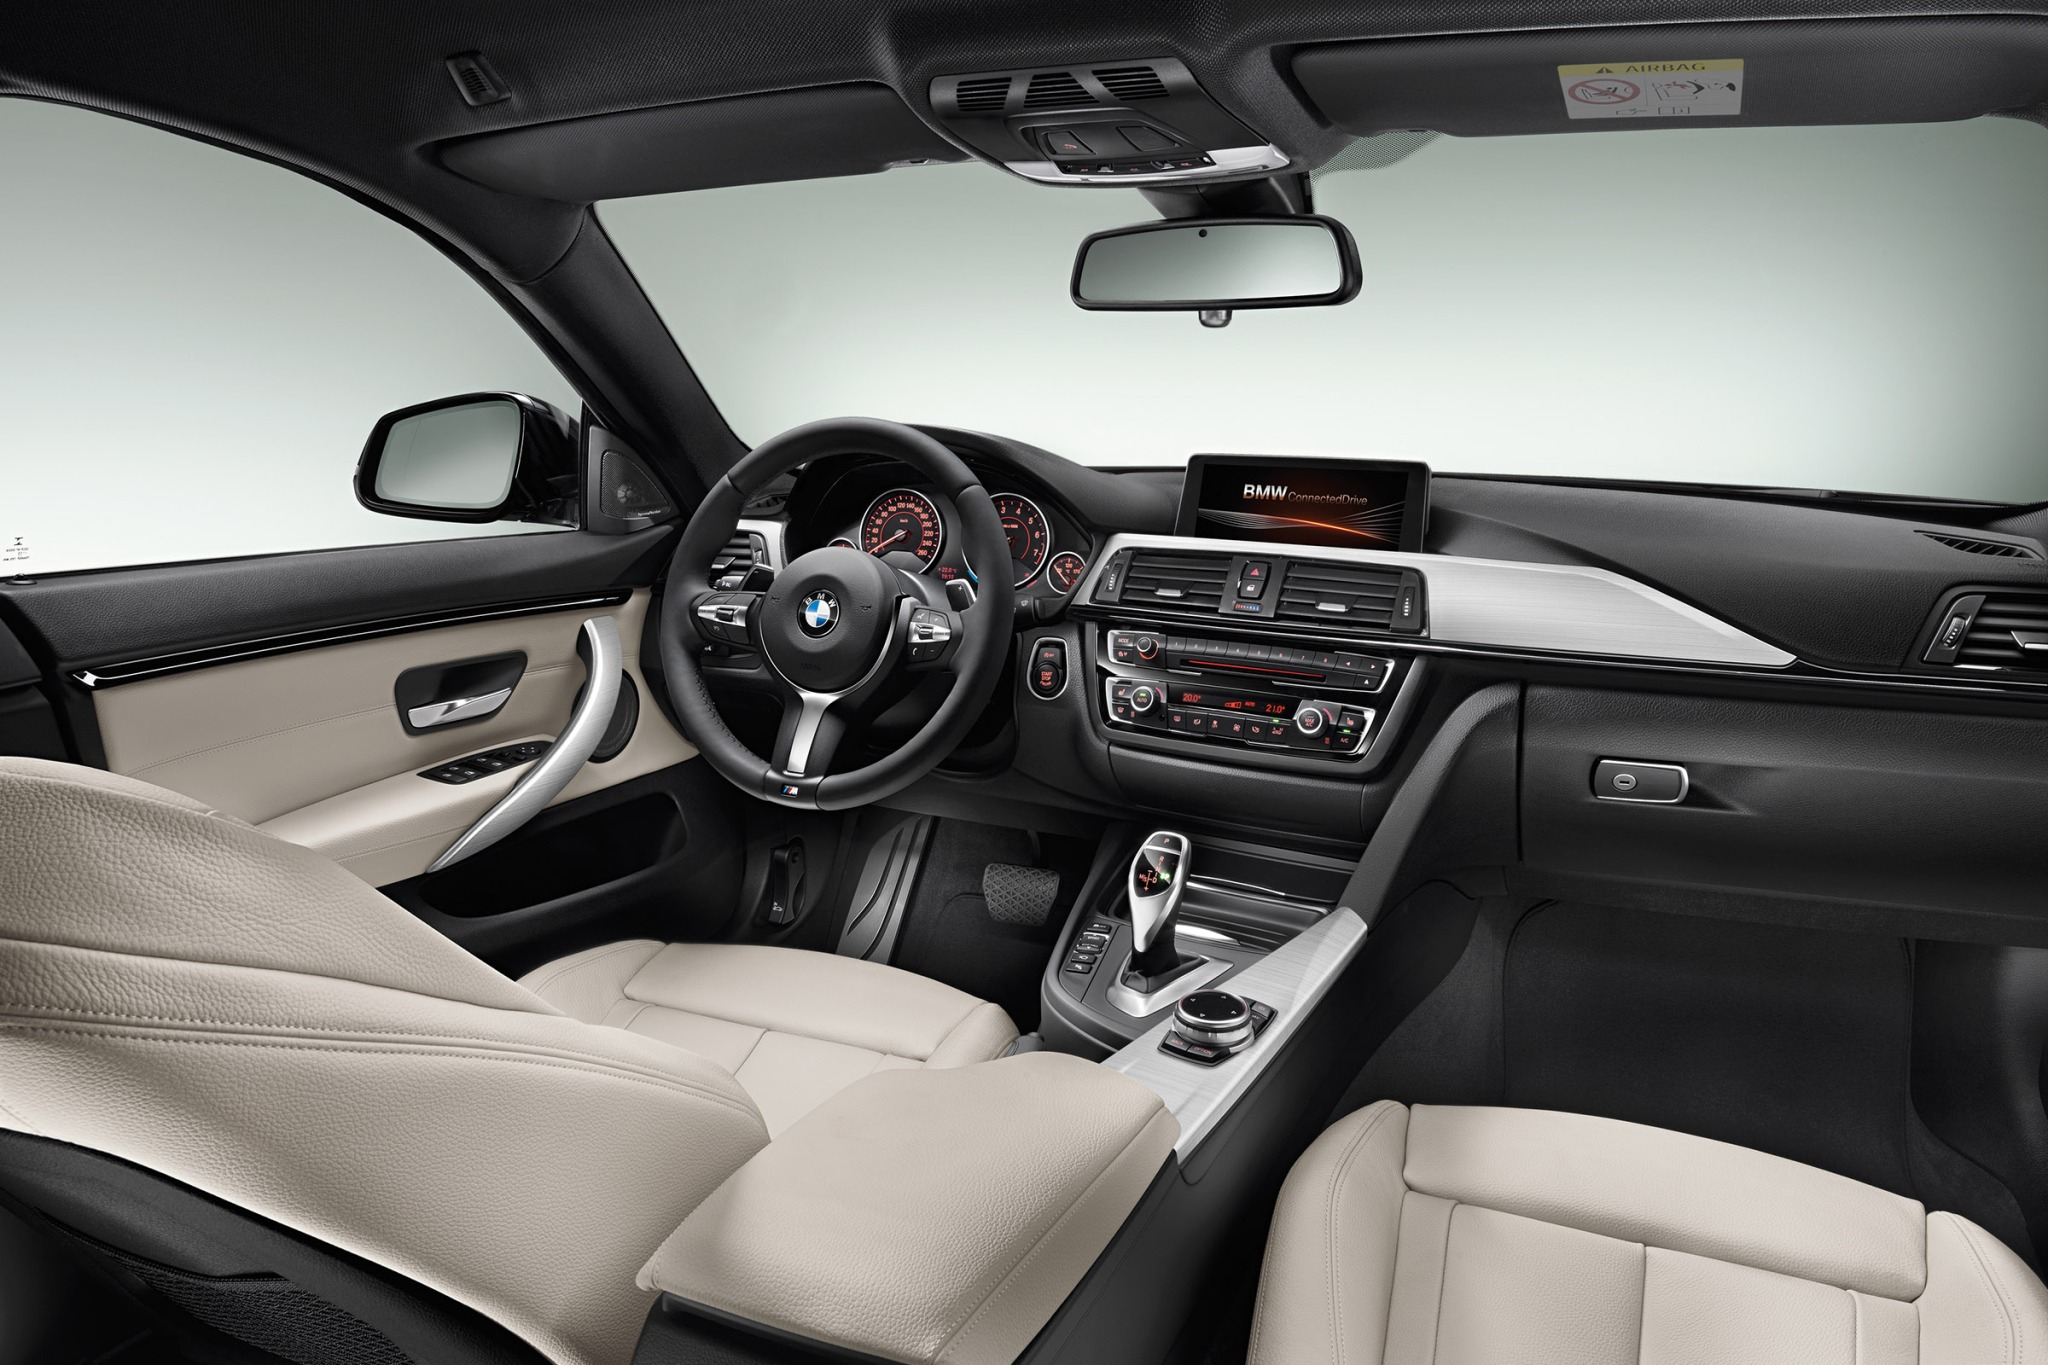 2015 Bmw 4 Series Gran Coupe Dashboard And Cockpit (View 7 of 11)